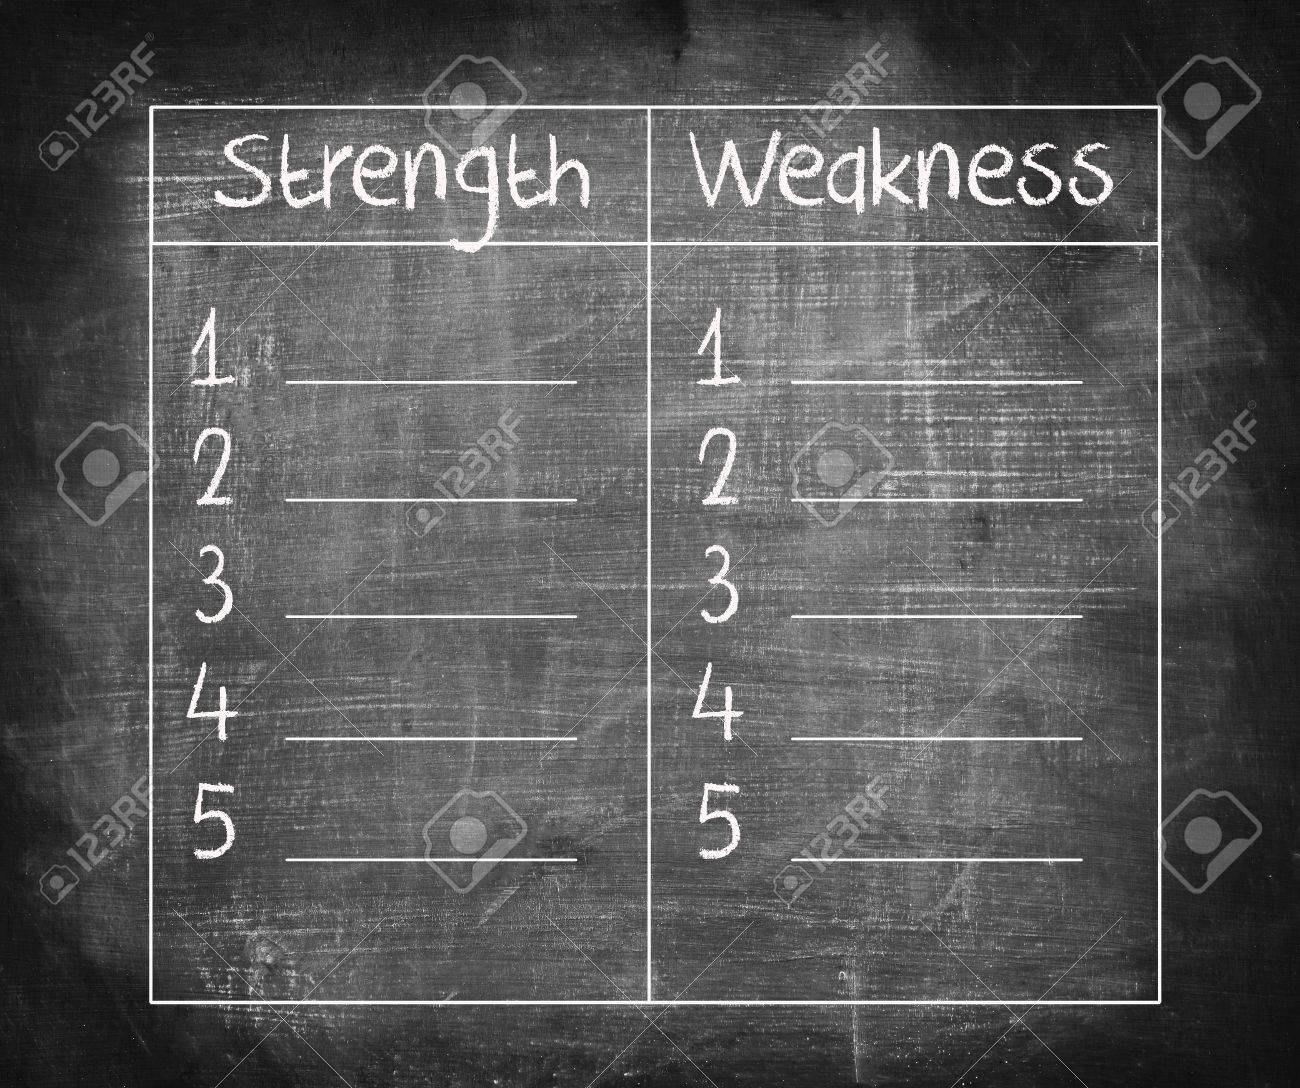 strength and weakness list comparison on blackboard stock photo stock photo strength and weakness list comparison on blackboard